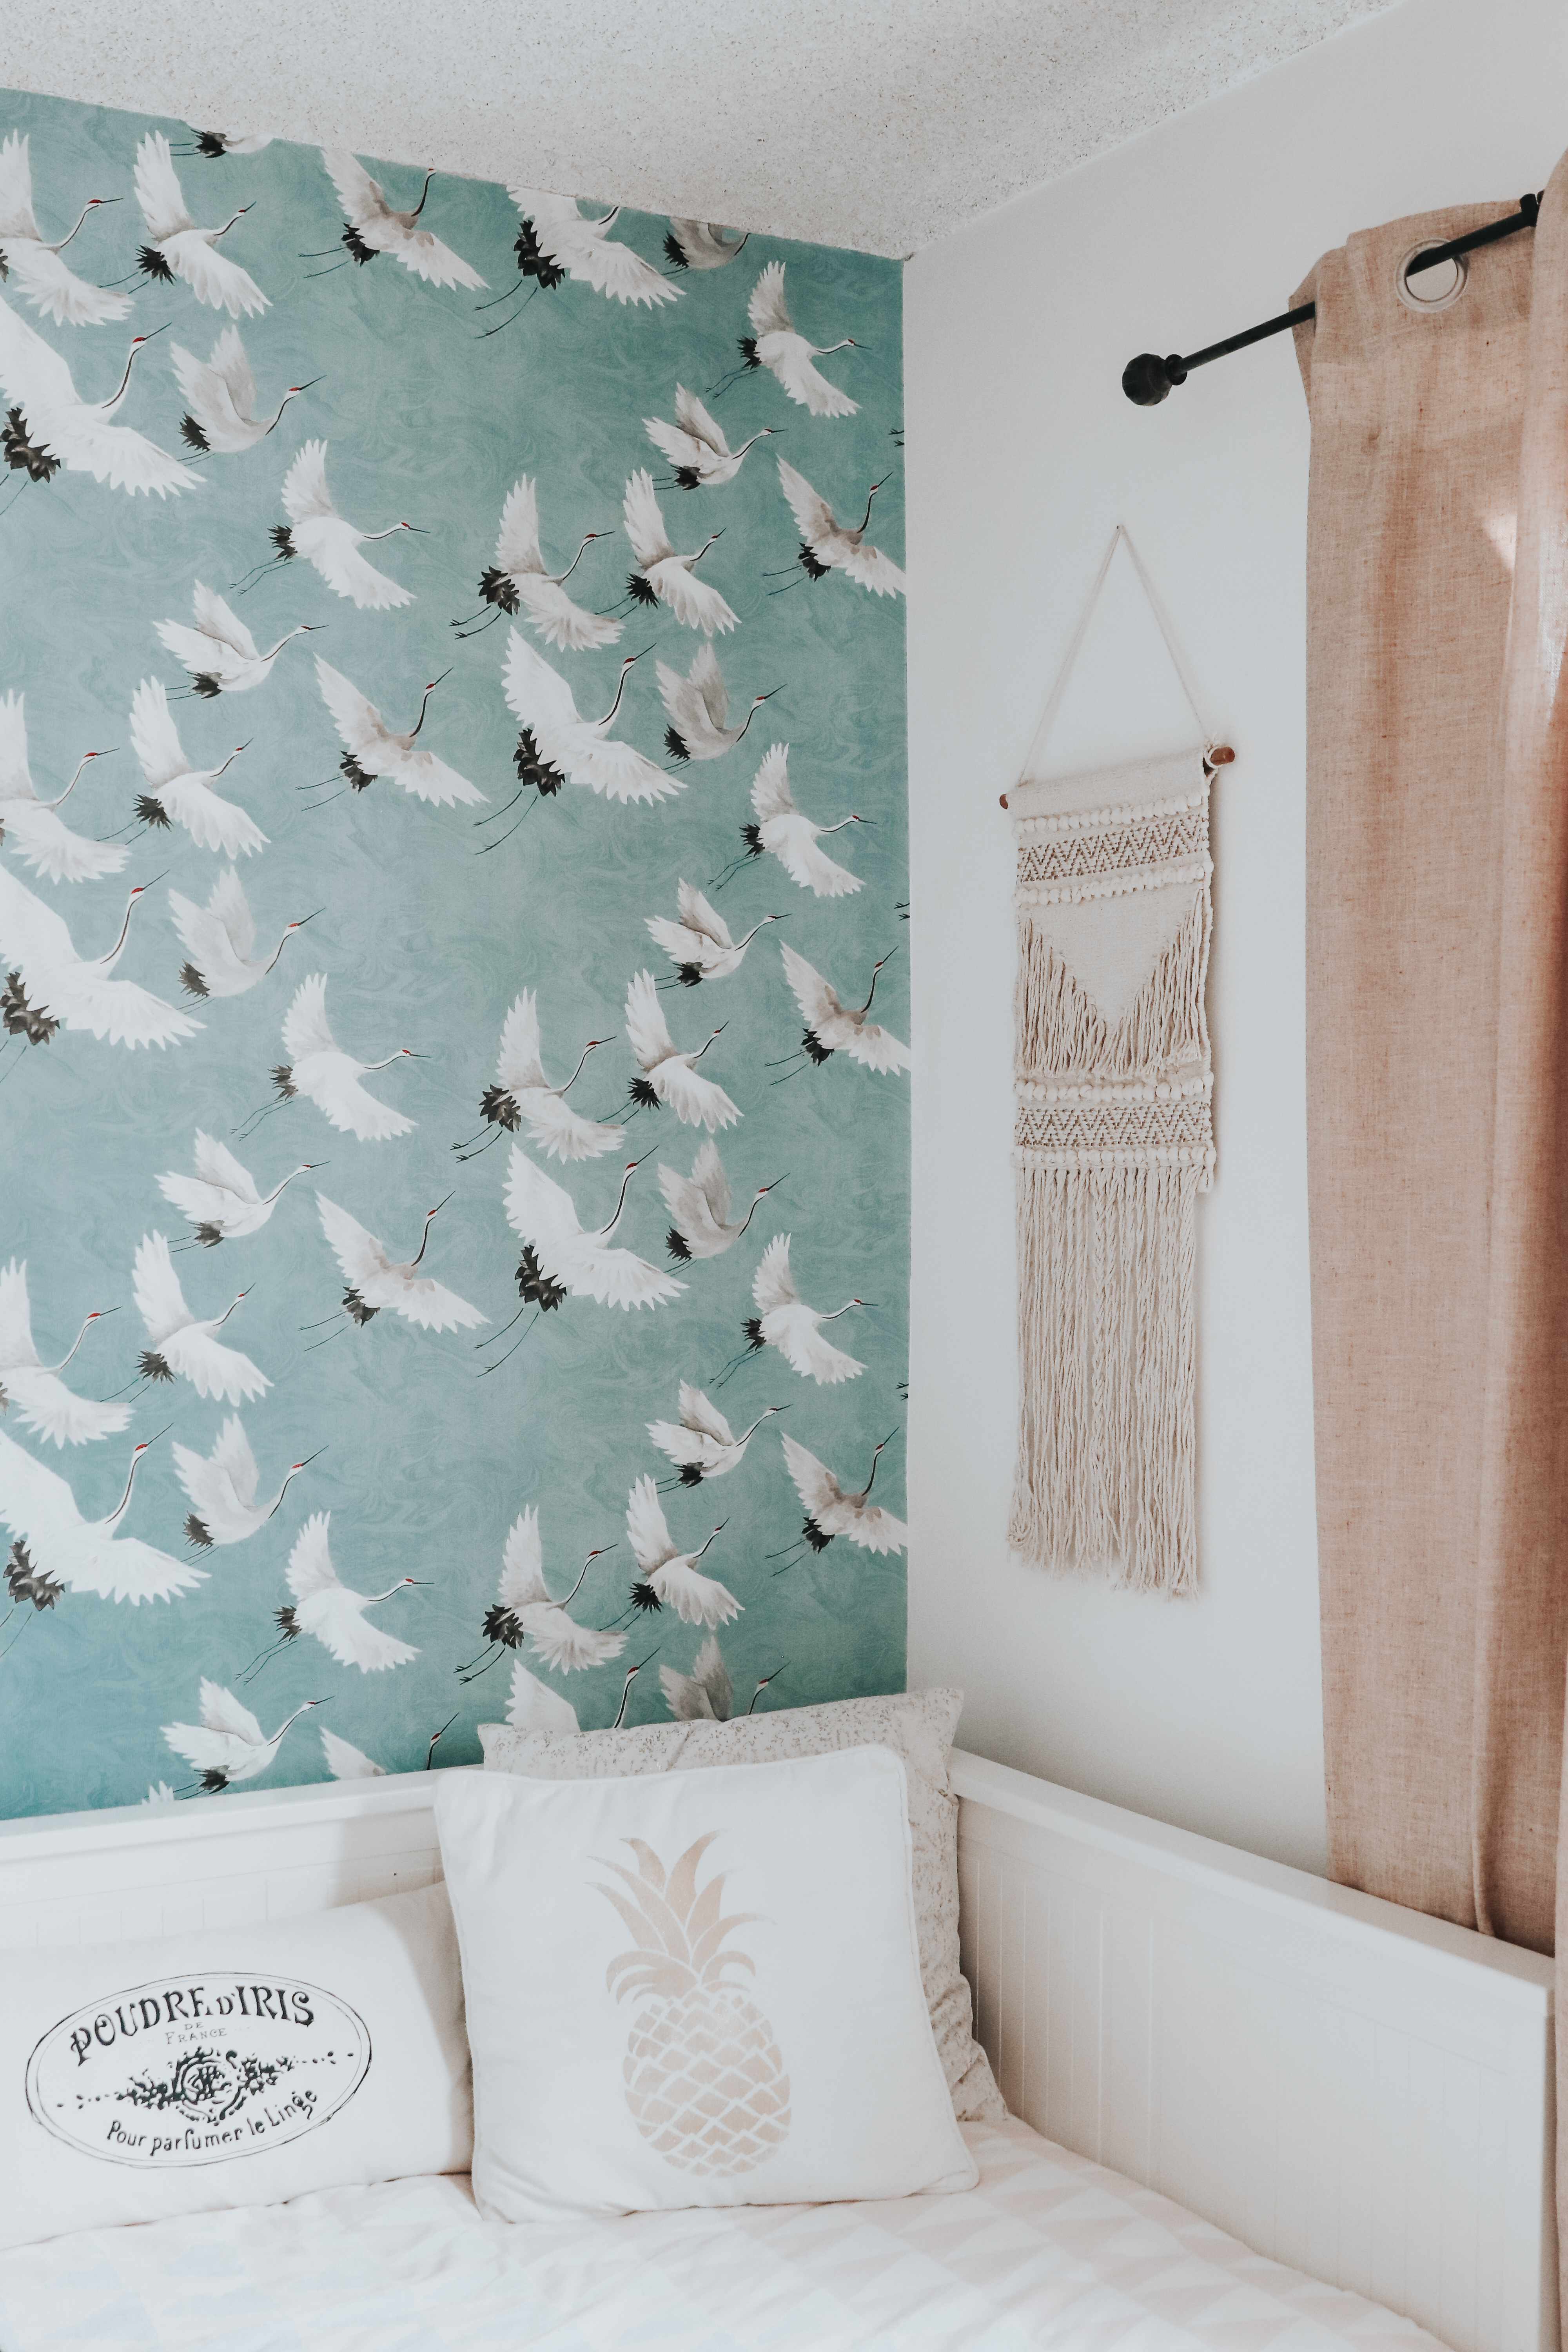 Redecorating With Wallpops!